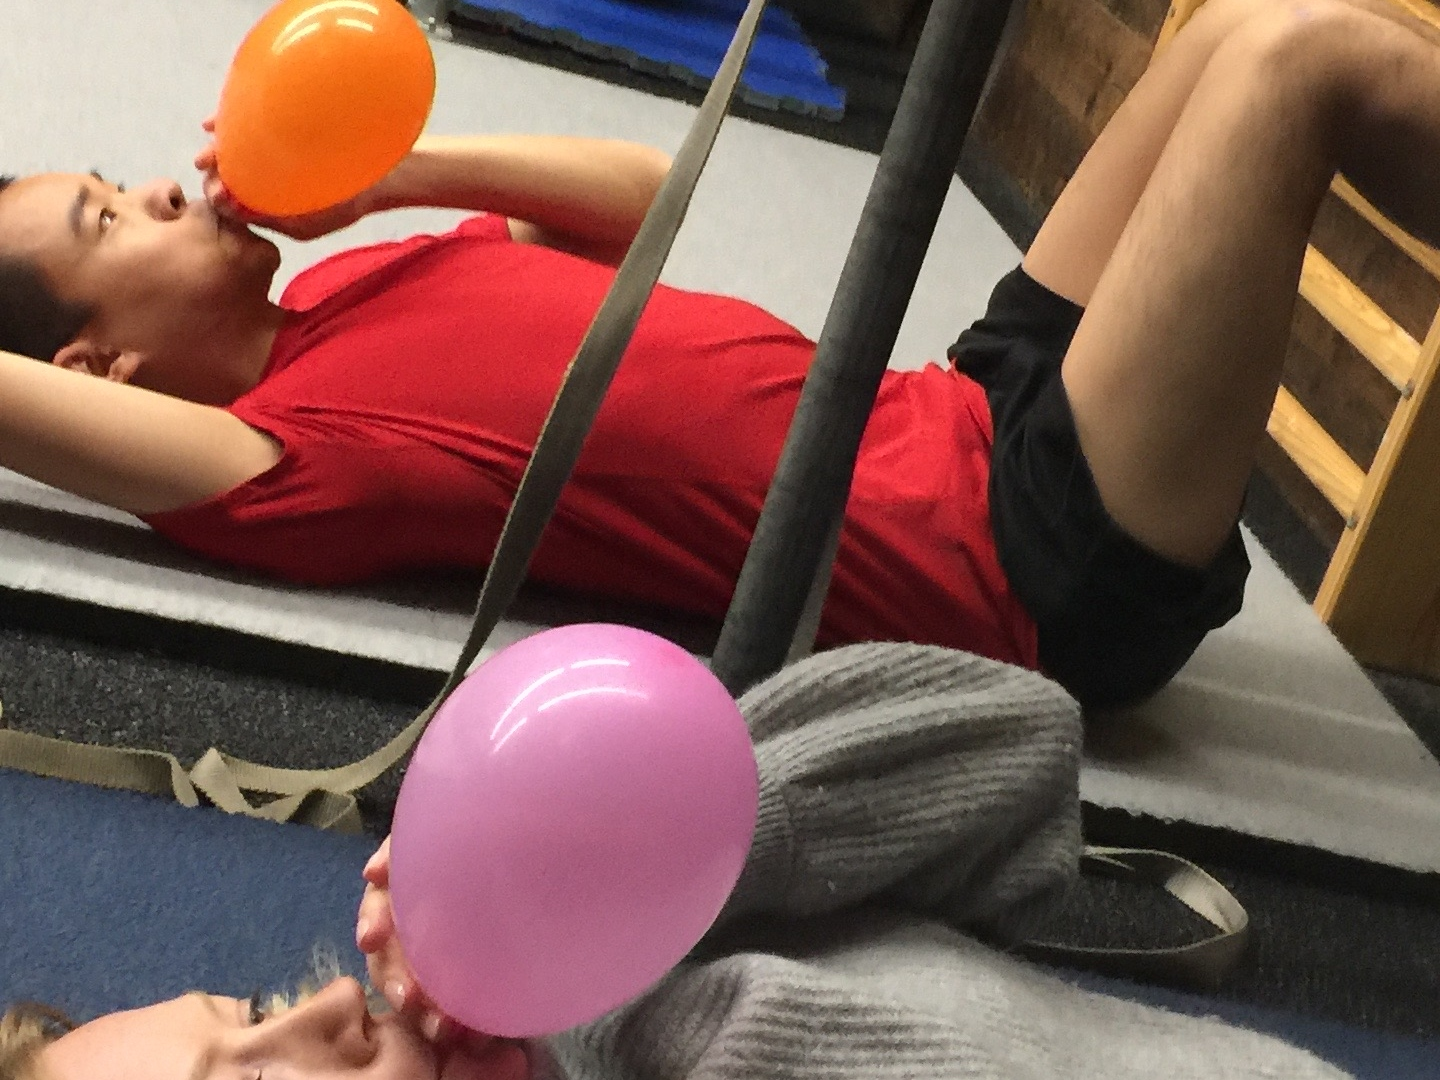 Calisthenics and the 90/90 balloon drill